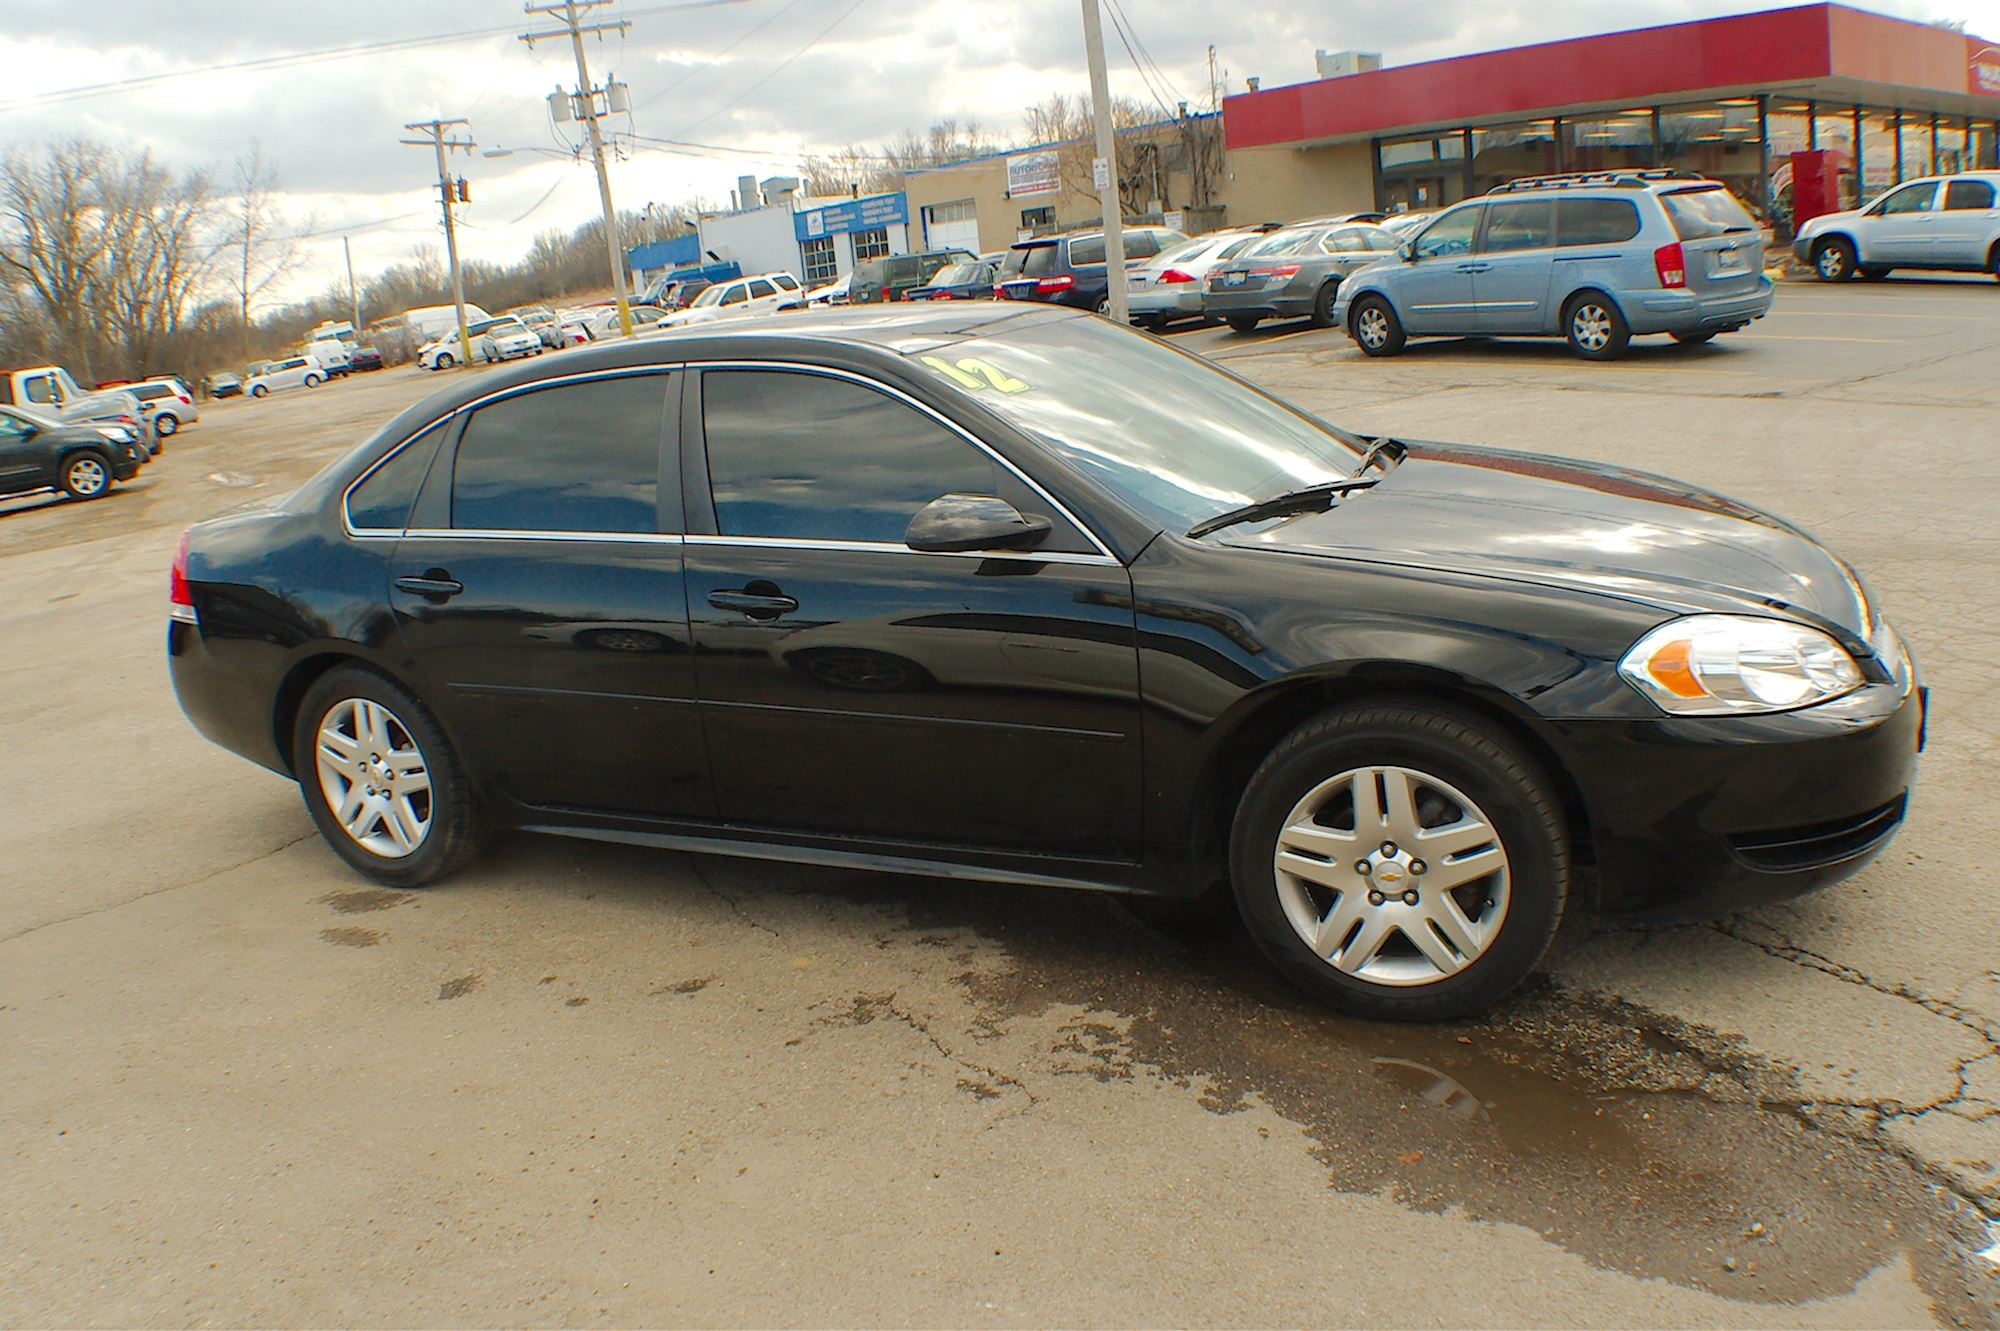 2012 Chevrolet Impala LT Black Flex Fuel Sedan Sale Bannockburn Barrington Beach Park